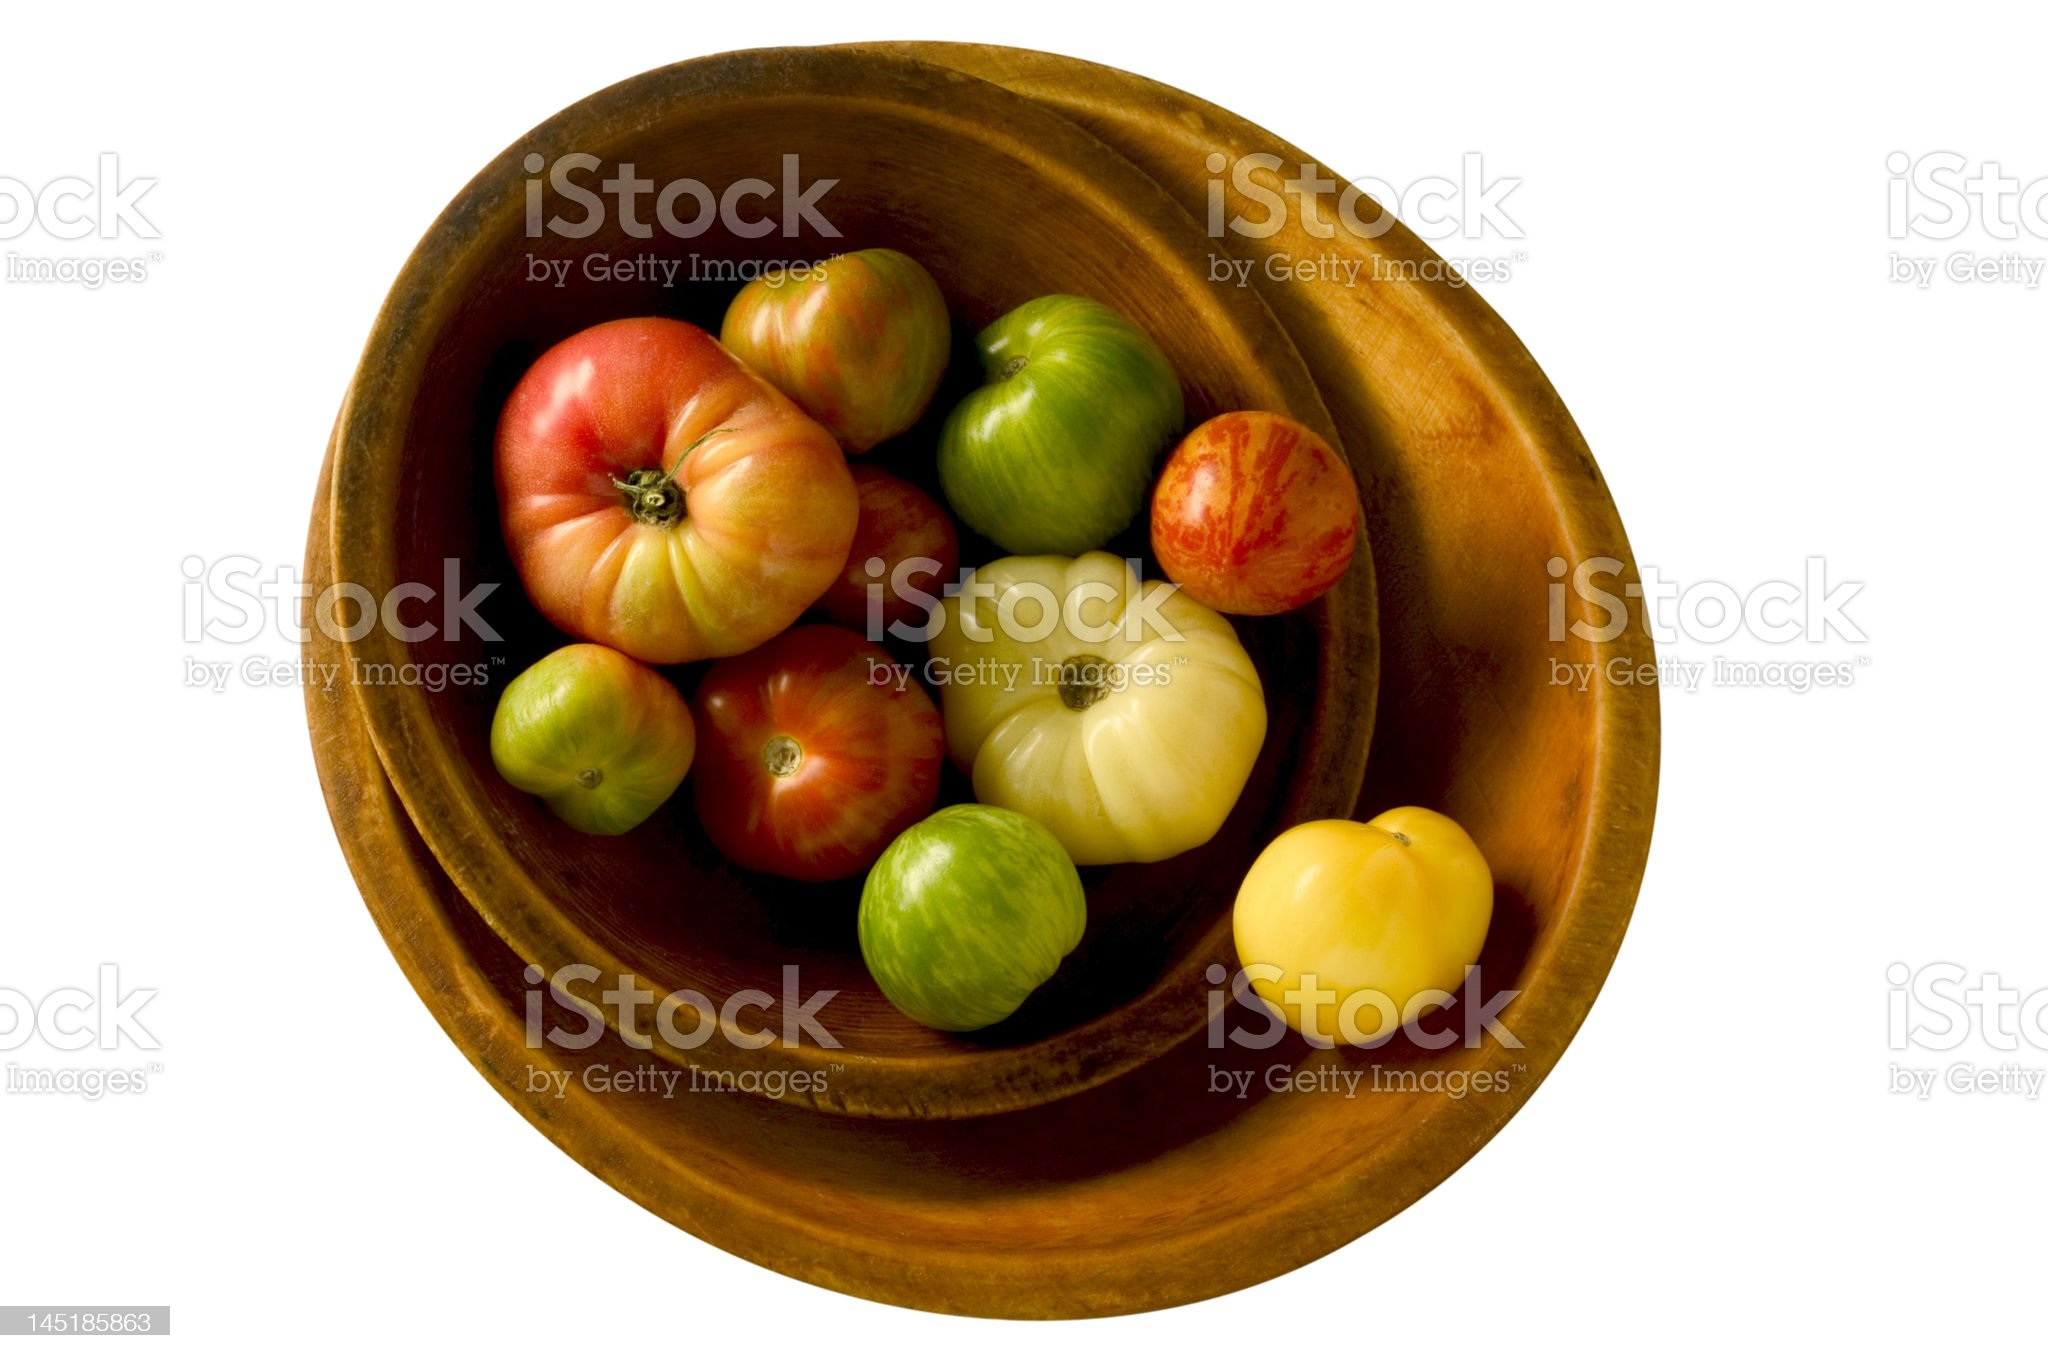 wooden bowl of heirloom tomatoes royalty-free stock photo